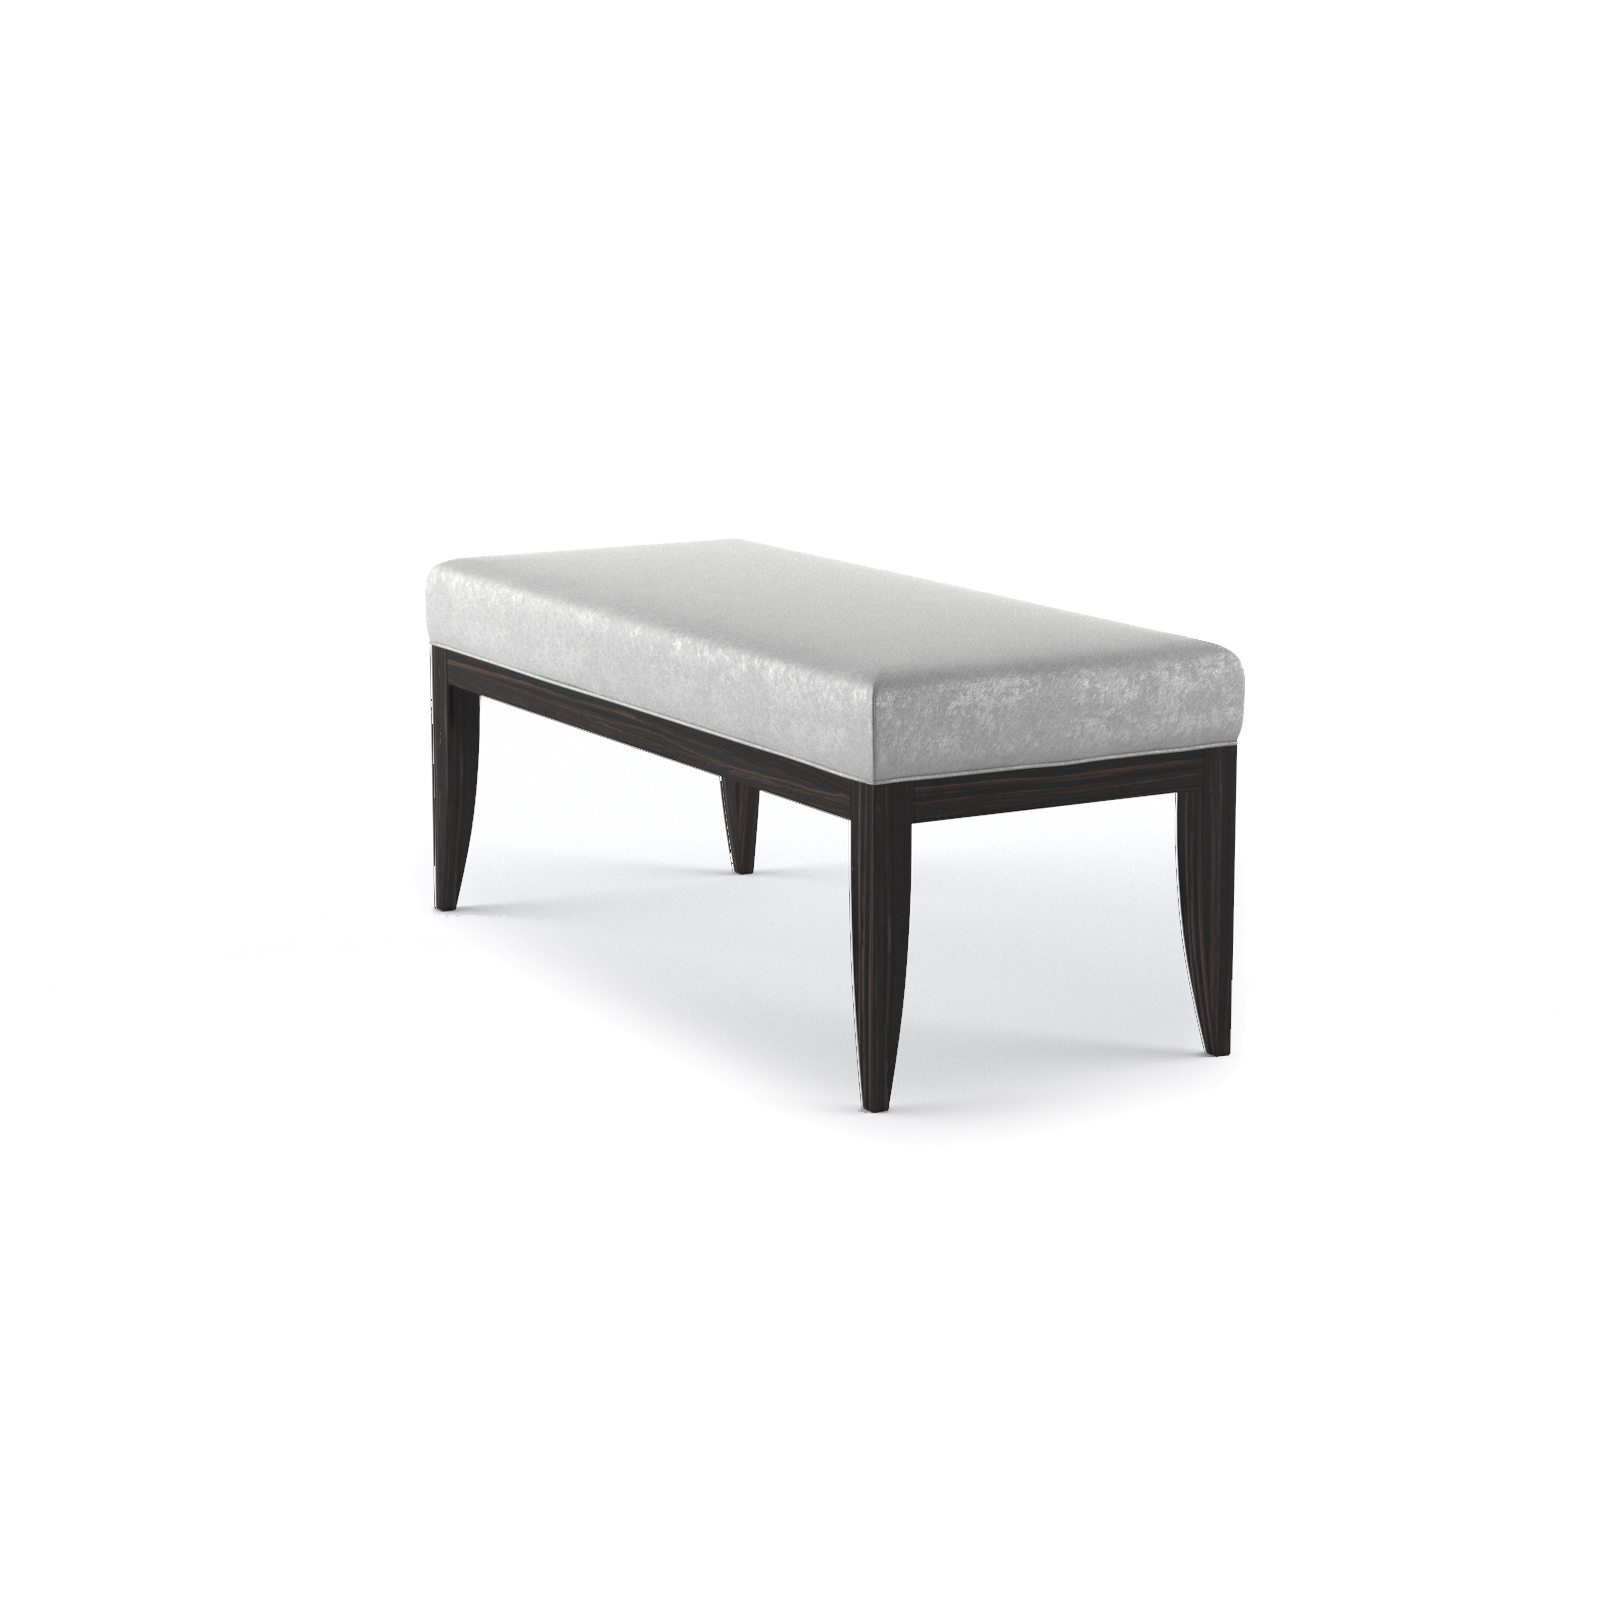 Turner Bench 01 by Bonham & Bonham 09